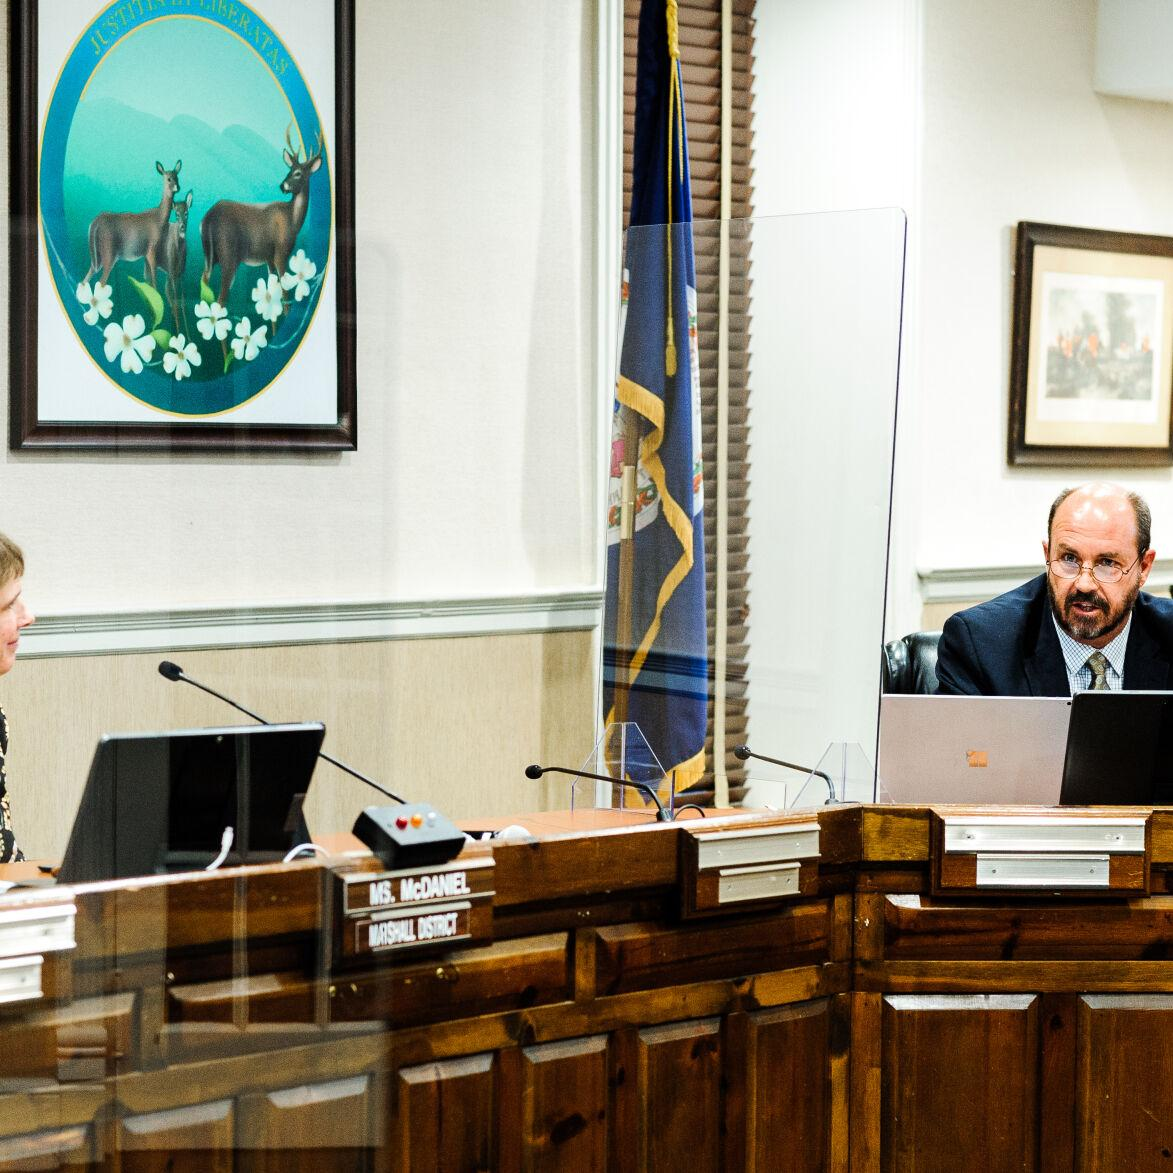 Supervisors move to disallow companion animal retailers in Fauquier